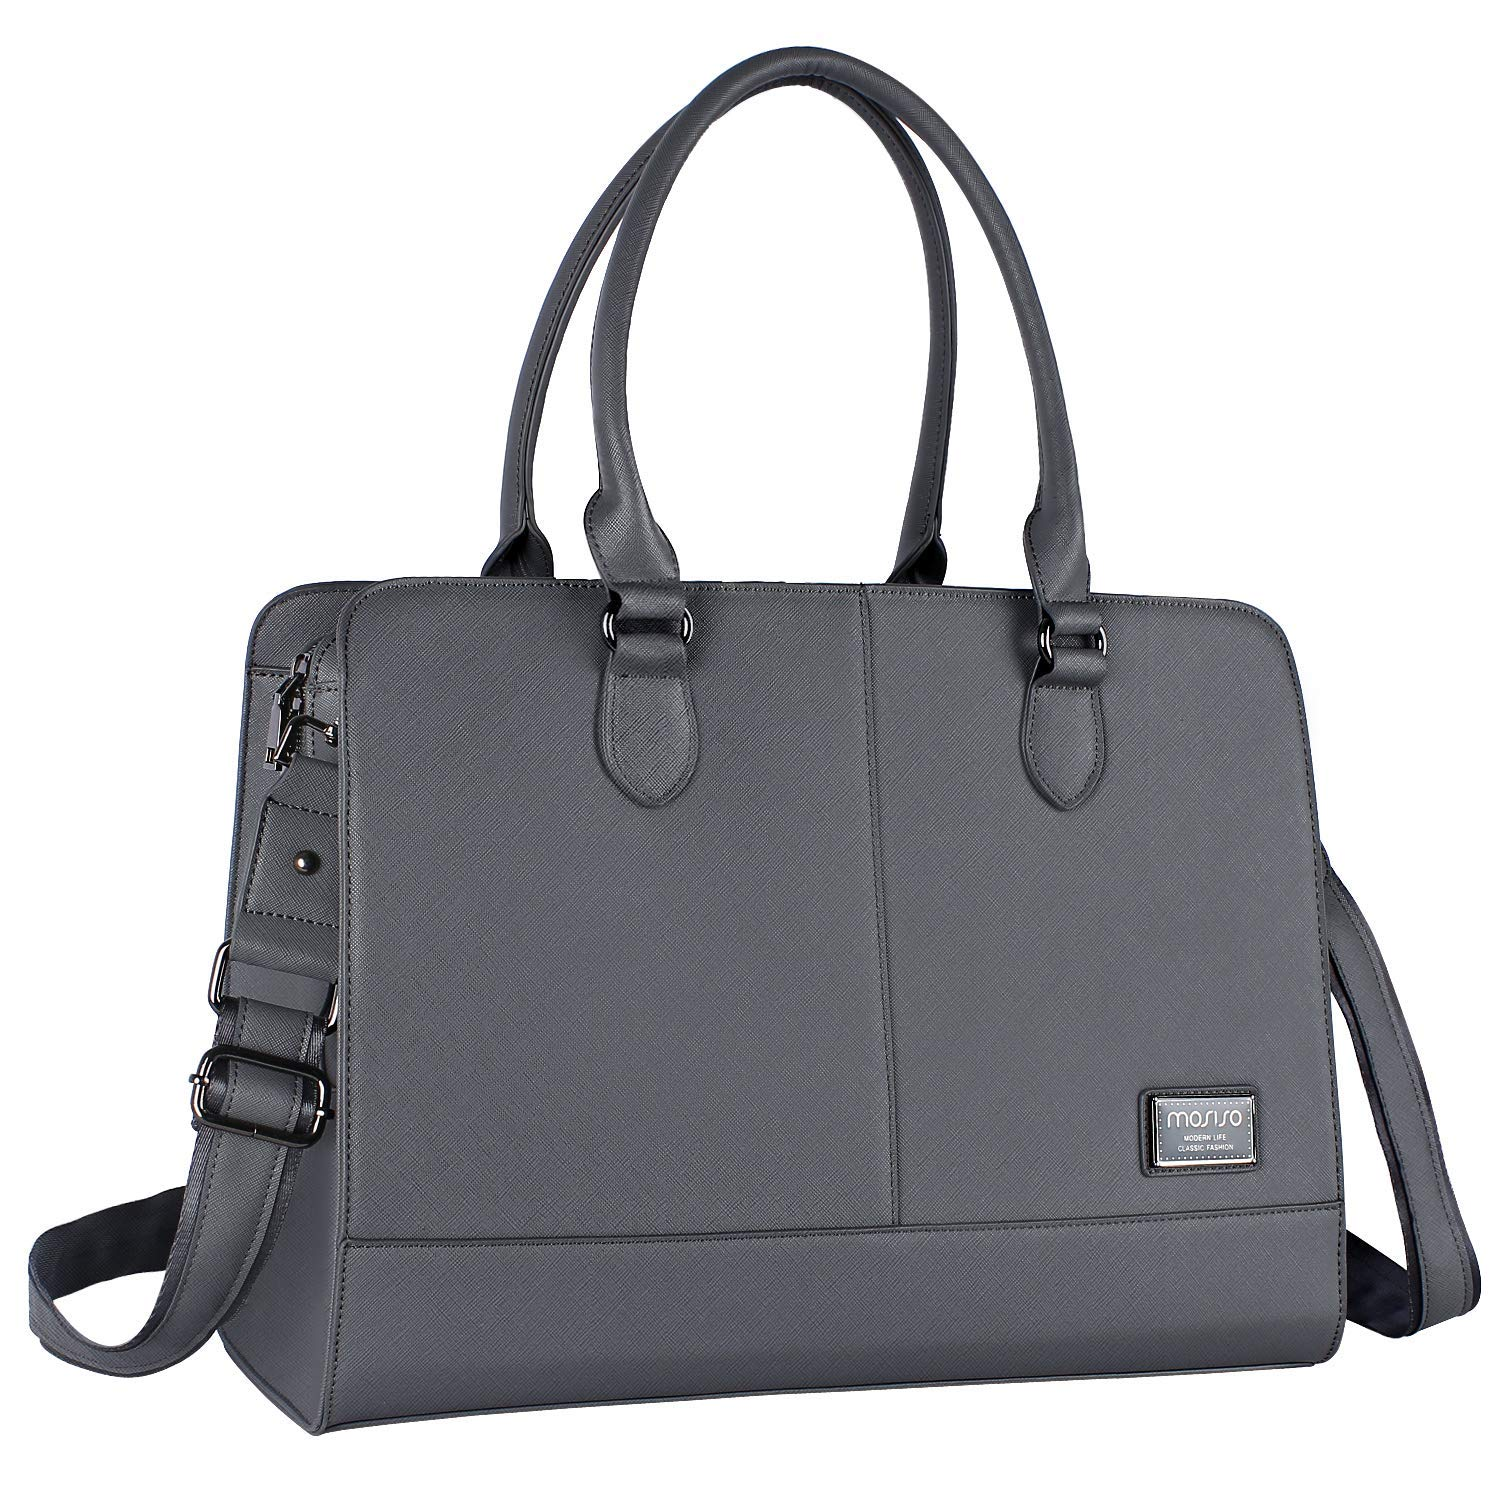 MOSISO Womens Laptop Bag (Up to 15.6 Inch), Briefcase for Women,PU Leather Large Capacity with 3 Layer Compartments Business Work Travel Tote Shoulder Handbag Compatible MacBook & Notebook, Space Gray by MOSISO (Image #1)